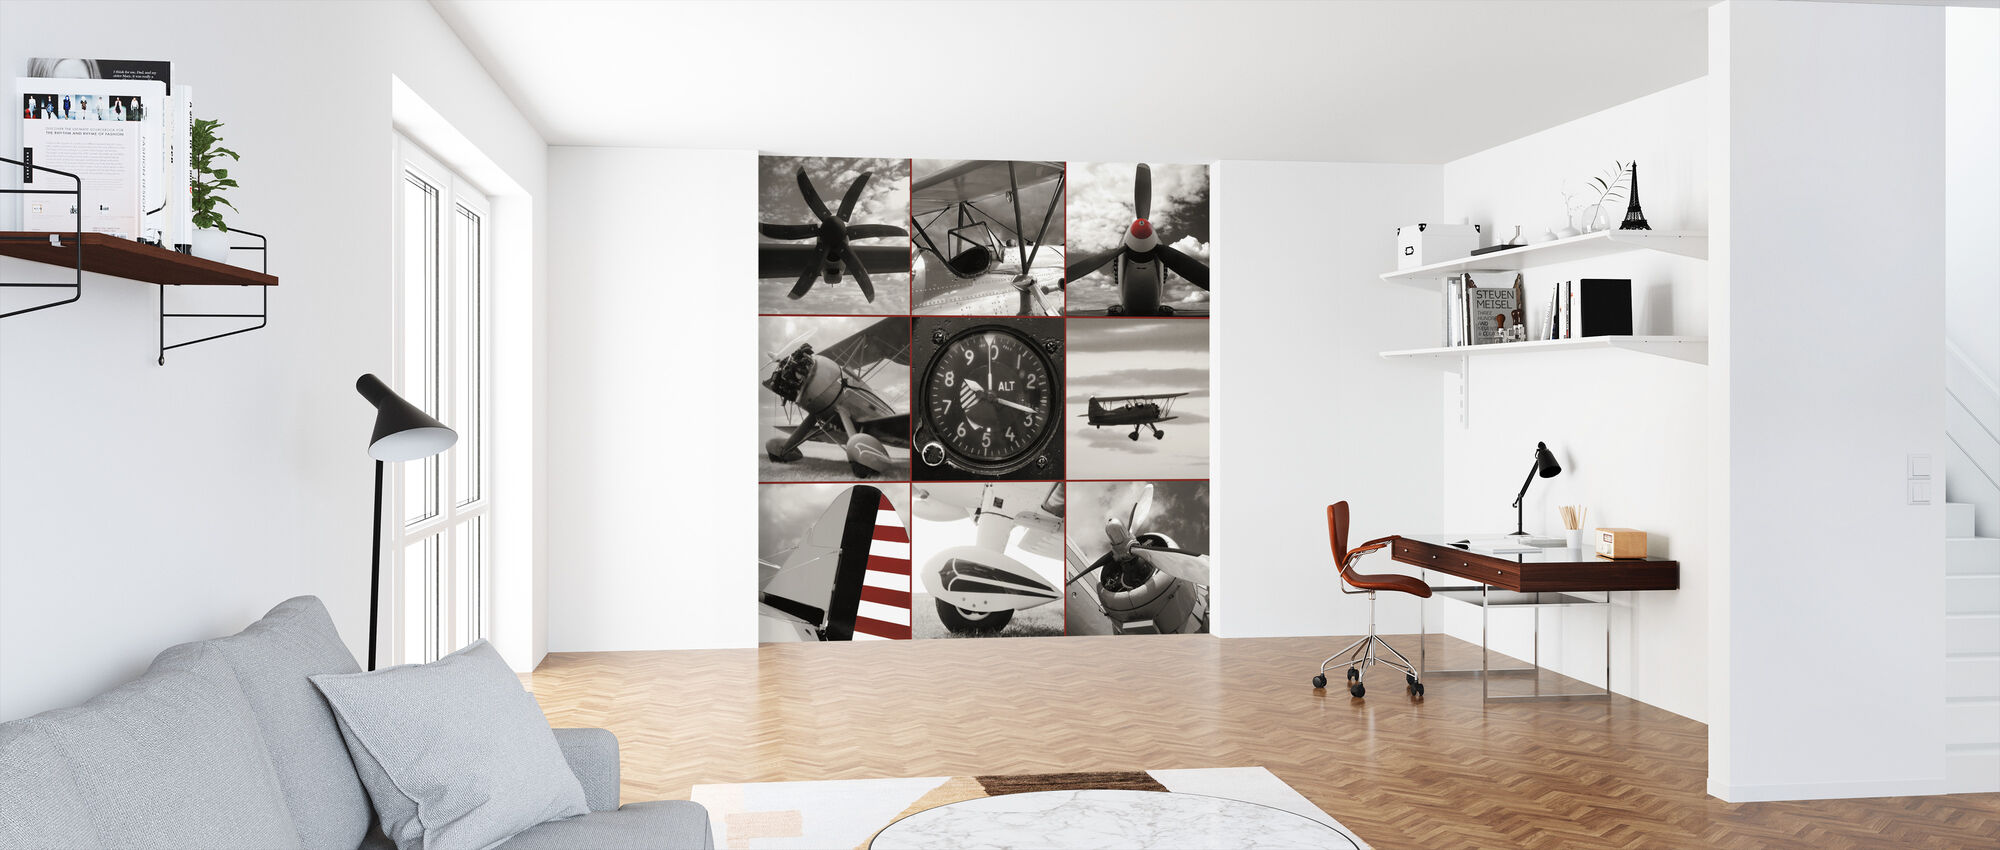 Aircraft Montage - Wallpaper - Office